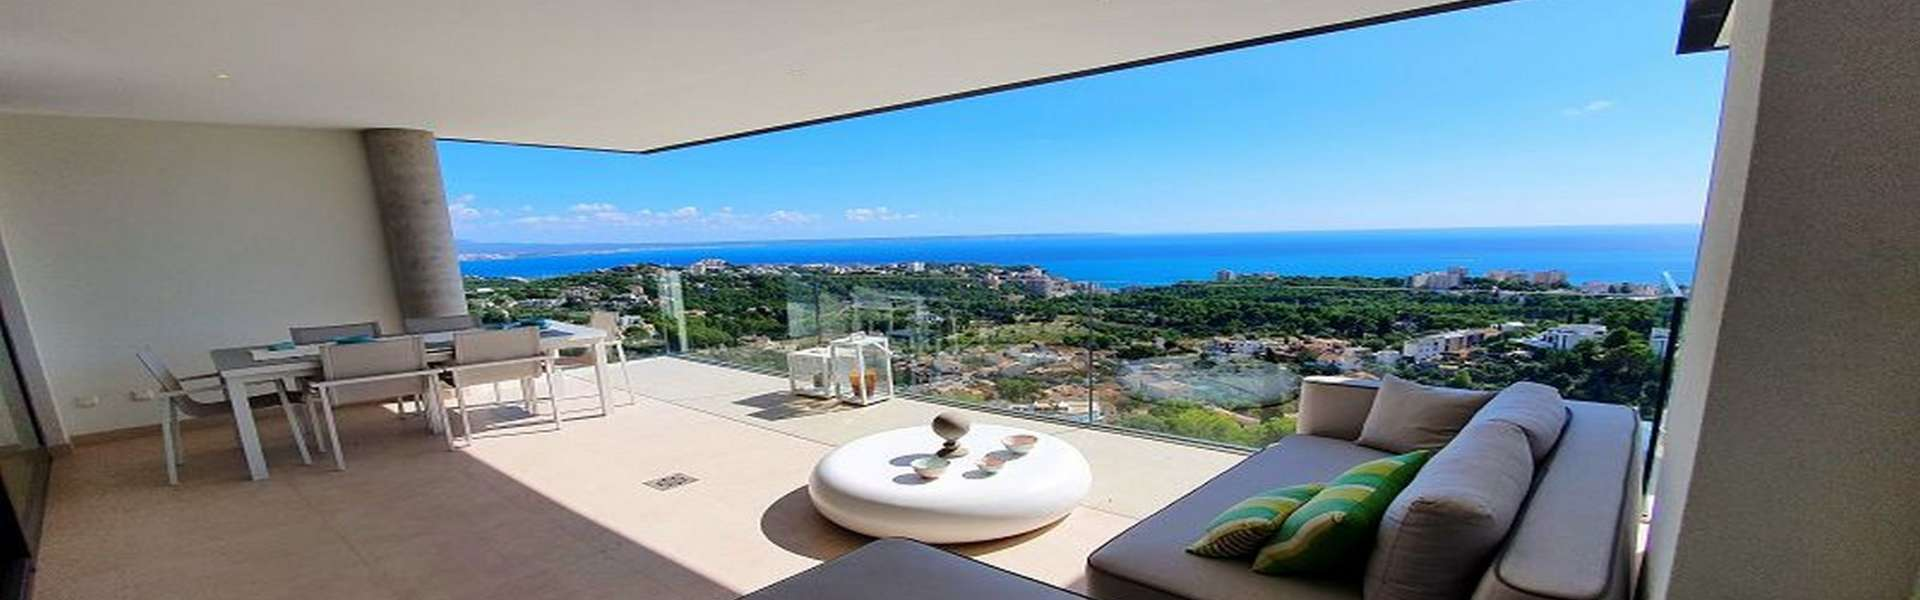 Palma/Génova - Apartments/Penthouse with sea view in exclusive location